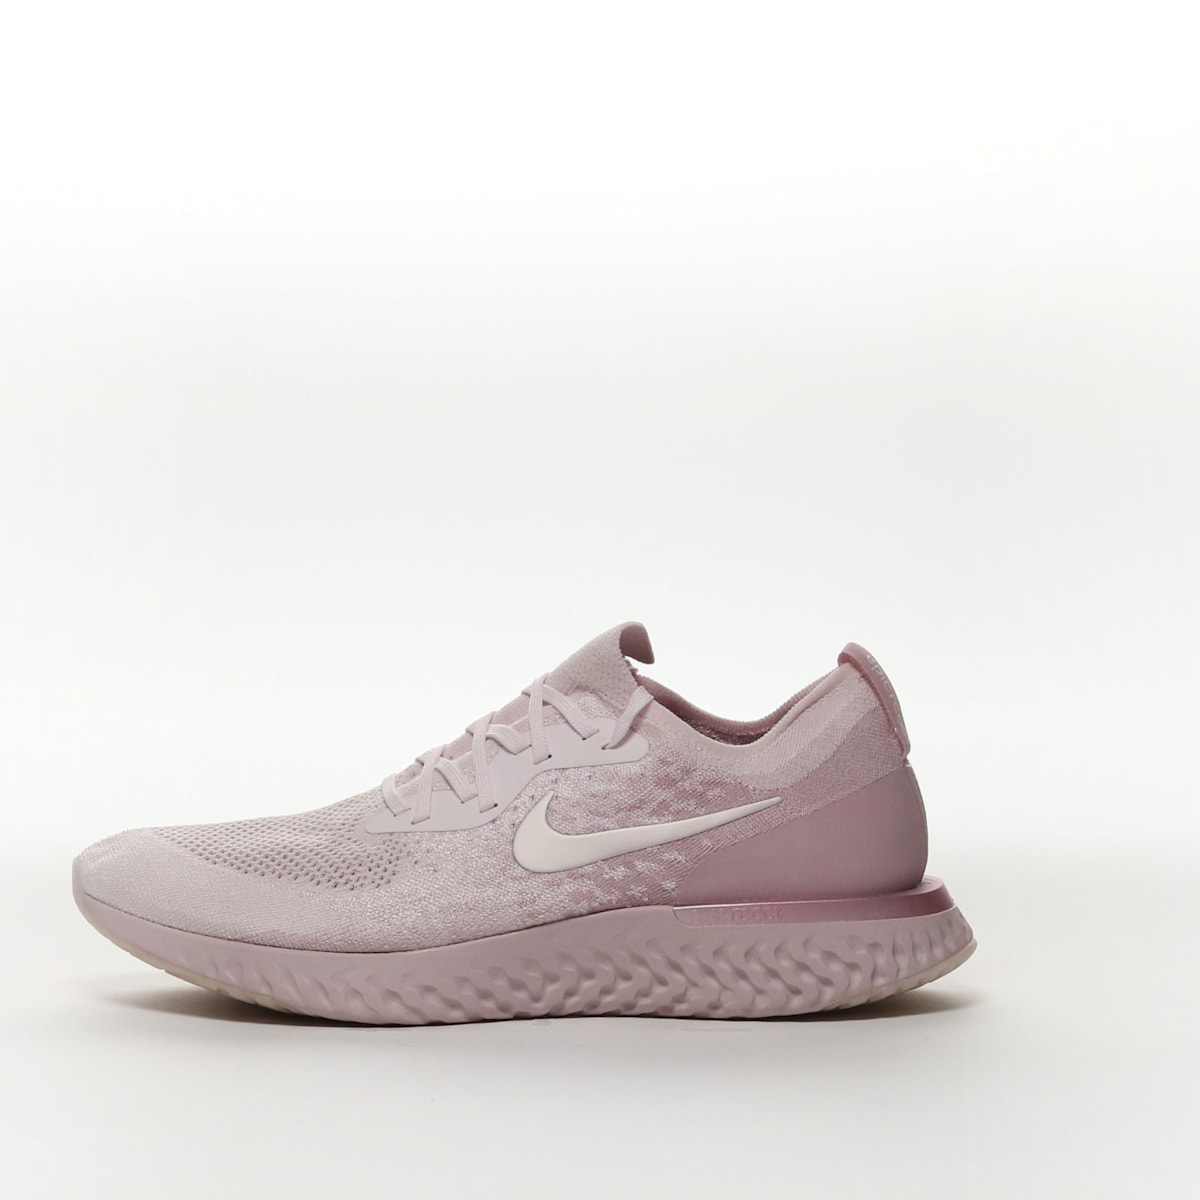 a7fd13f3247 Nike Epic React Flyknit - PEARL PINK BARELY ROSE ARCTIC PINK PEARL ...